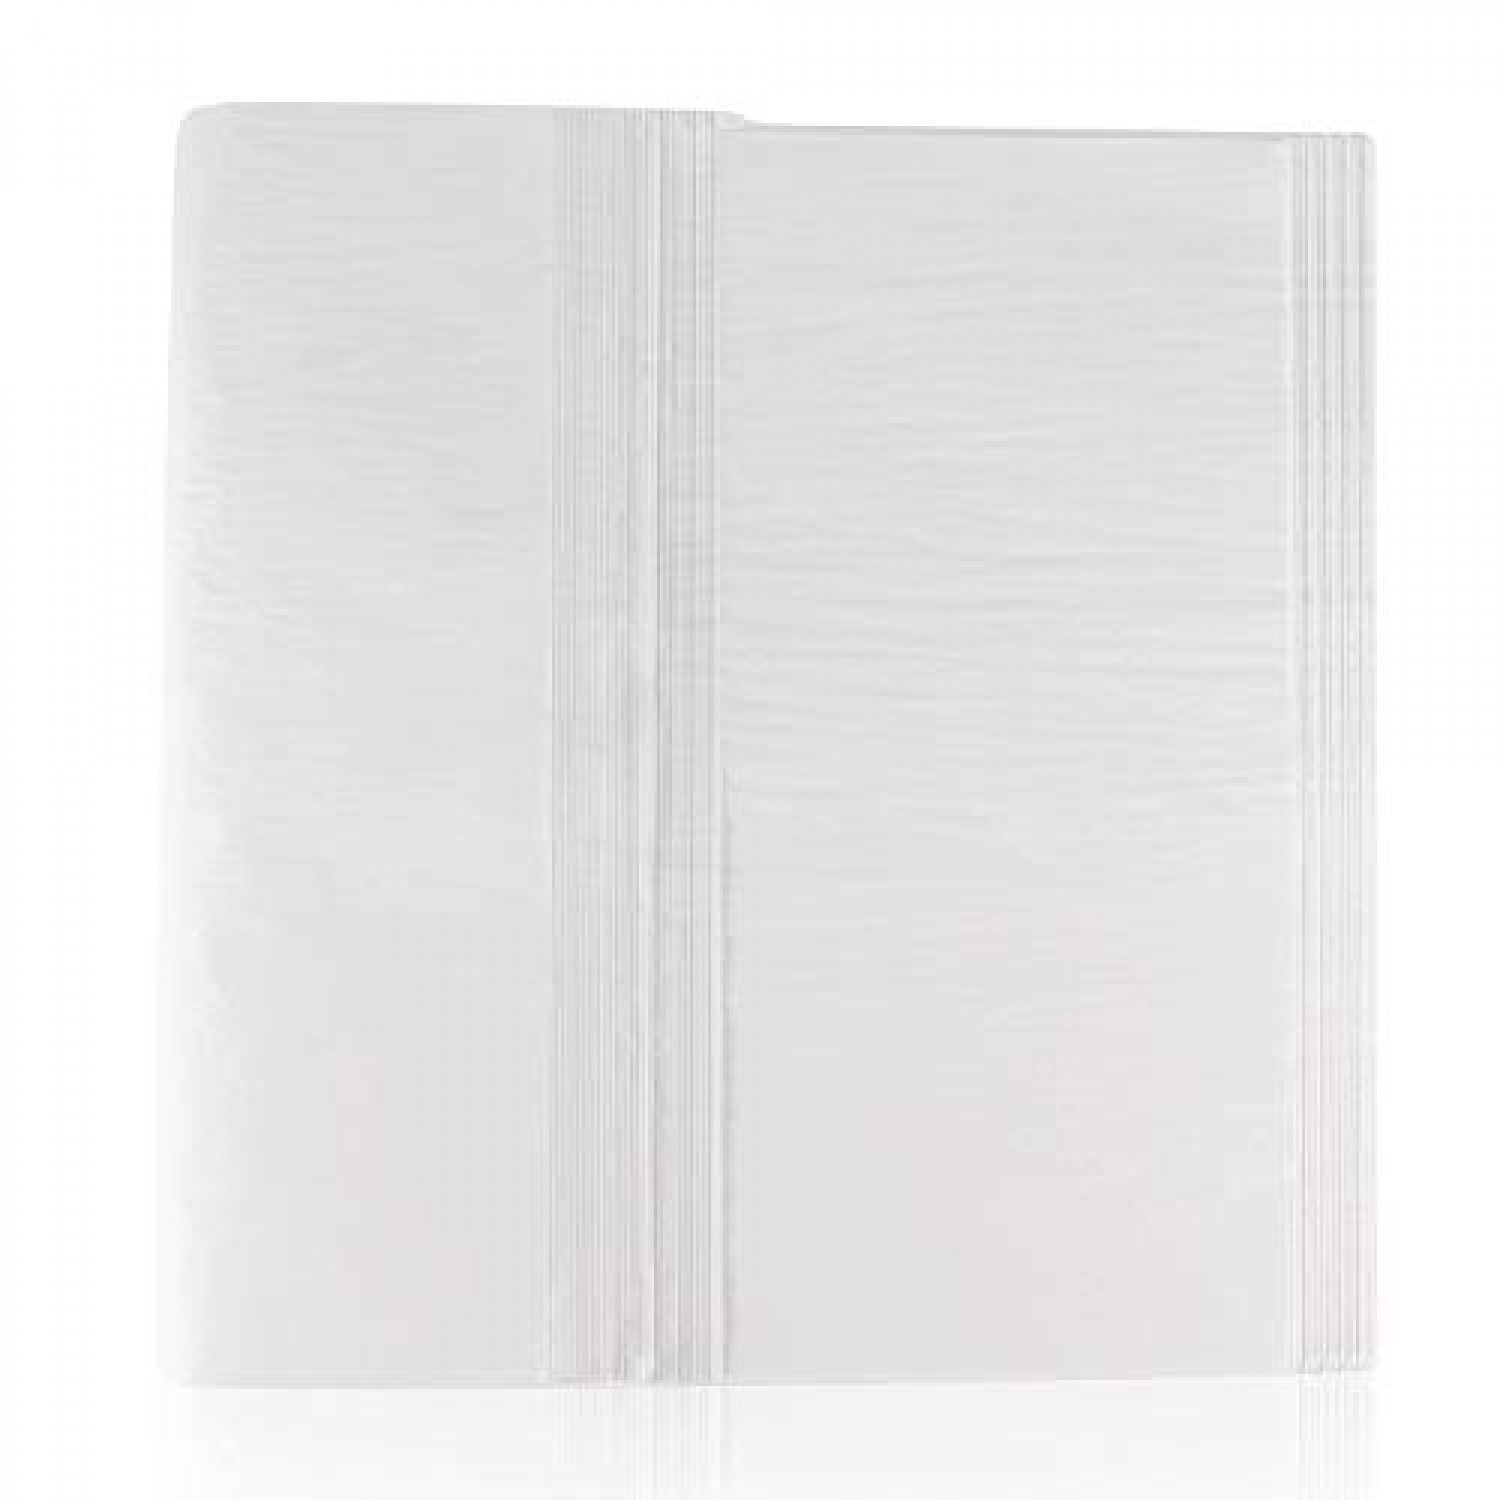 Soft Ivory Birch Tissue Paper 15 X 20 120 Sheets Premium Quality Gift Wrap Paper by A1 bakery Supplies Made in USA